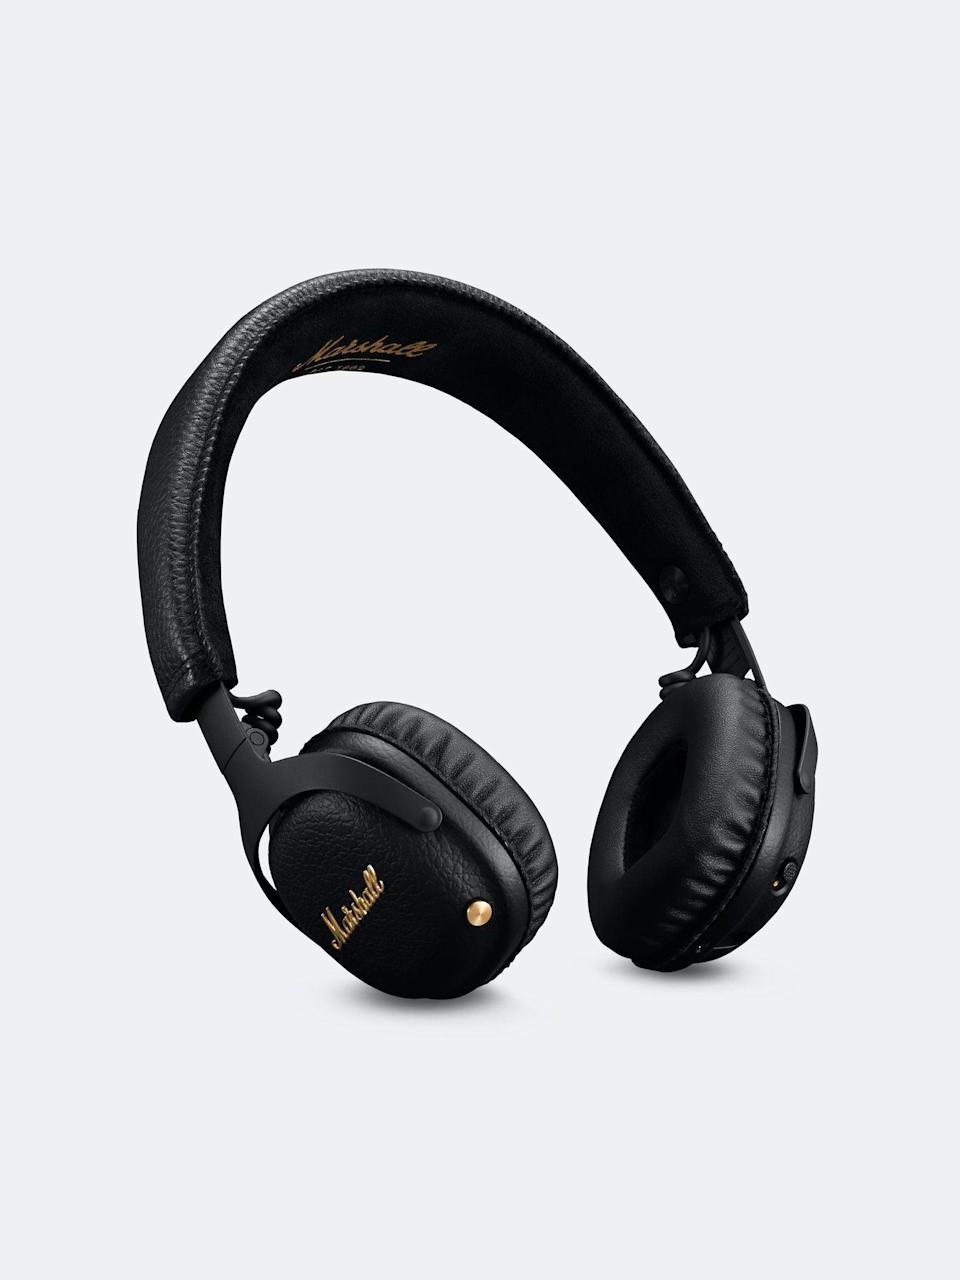 "<h3>Marshall Mid A.N.C. Bluetooth Headphones</h3> <br>Your love for your <em>bambino</em> is unconditional, but sometimes, you just need a moment of escape. Whether you're engaging in a ten-minute guided meditation or need to blast some Korn, noise-canceling headphones will help you tune out the world for a brief moment.<br><br><strong>Marshall</strong> Mid A.N.C. Bluetooth Headphones, $, available at <a href=""https://go.skimresources.com/?id=30283X879131&url=https%3A%2F%2Fwww.verishop.com%2Fmarshall%2Fheadphones%2Fmid-anc-bluetooth-headphones%2Fp4163173187607"" rel=""nofollow noopener"" target=""_blank"" data-ylk=""slk:Verishop"" class=""link rapid-noclick-resp"">Verishop</a><br>"